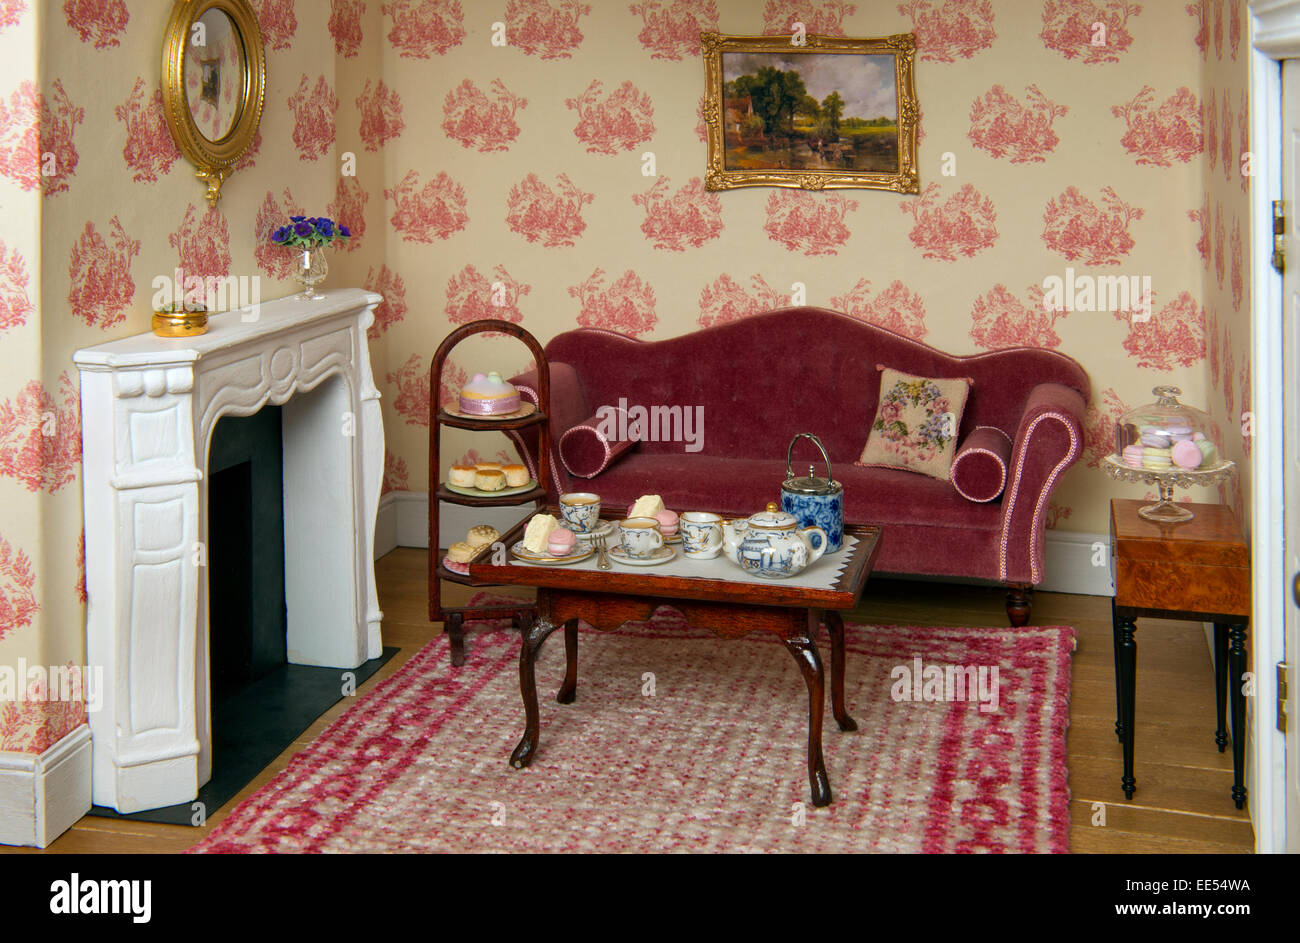 Nice Regency Period Dolls House, Showing The Miniature Interiors And Furniture.